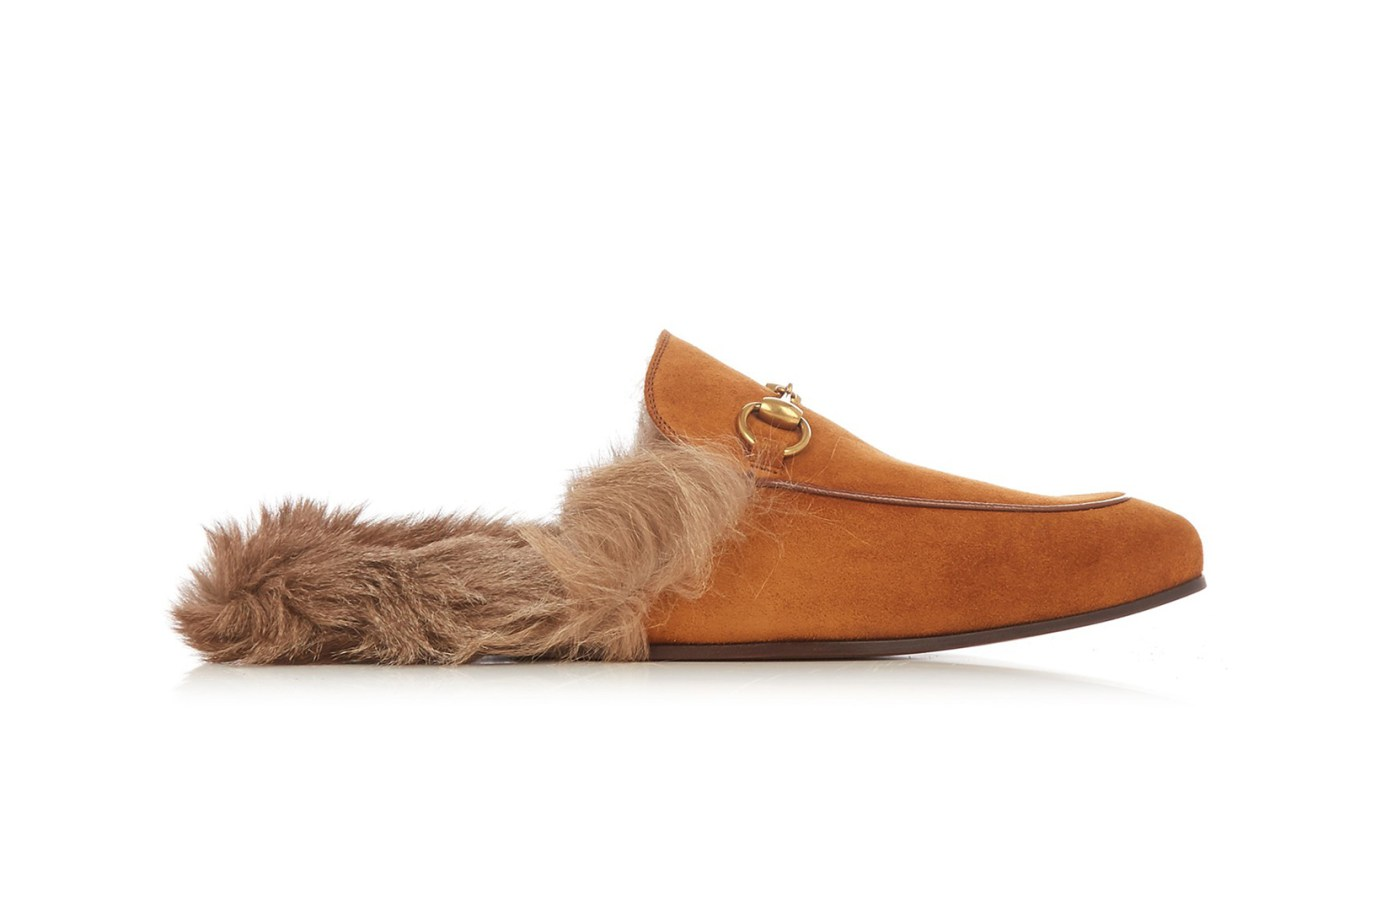 gucci-tan-suede-princetown-slipper-loafer-1